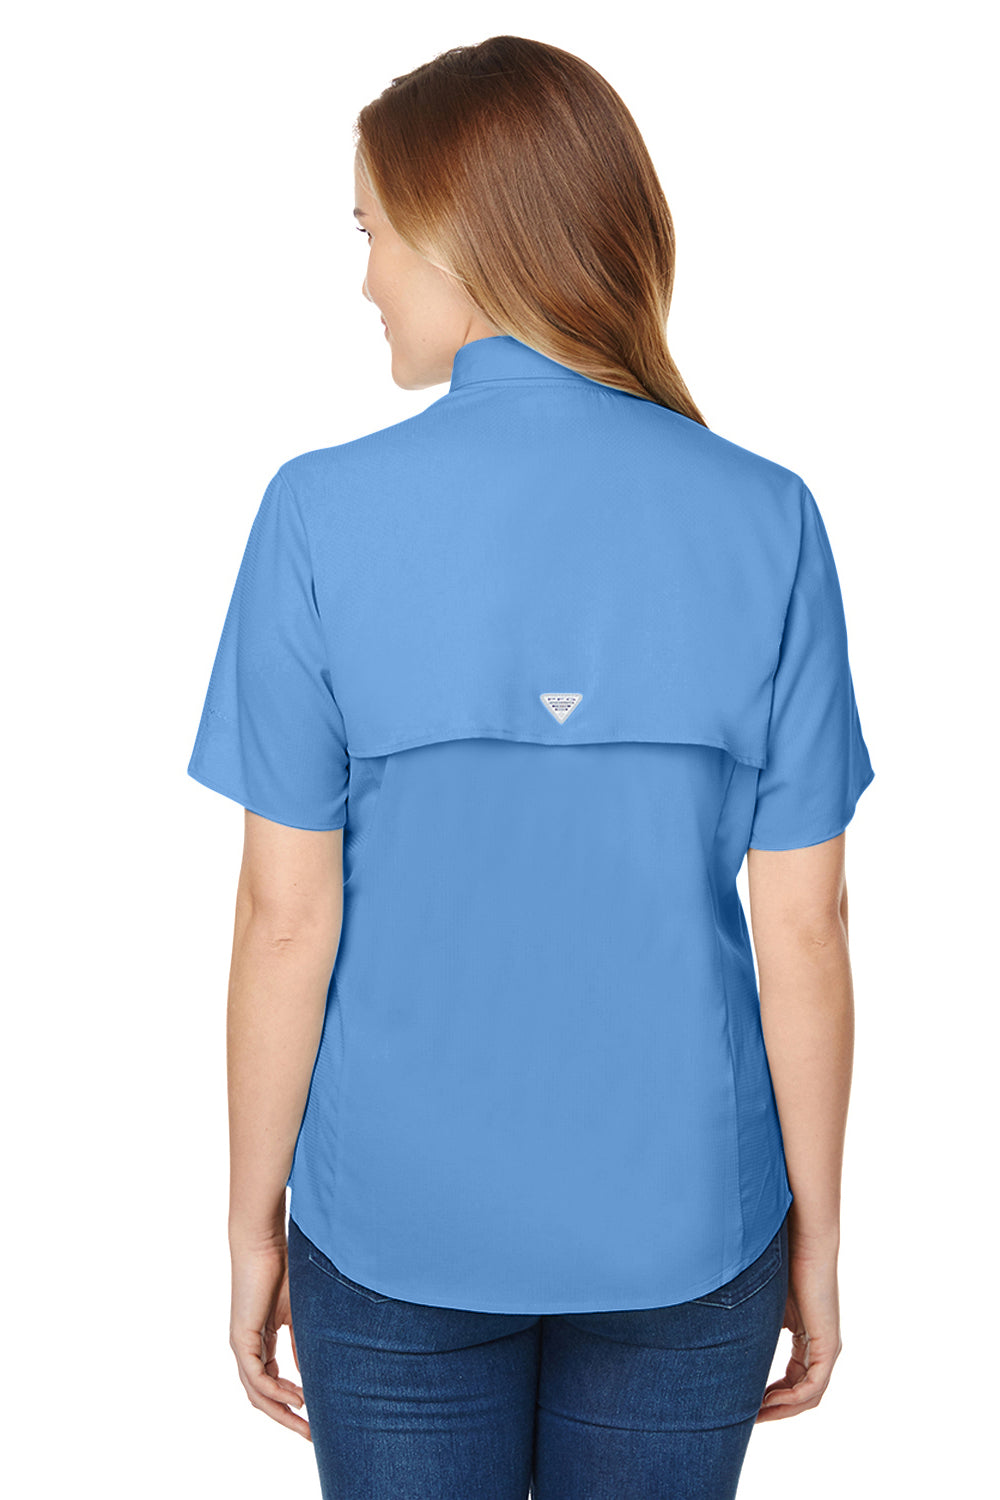 Columbia 7277 Womens Tamiami II Moisture Wicking Short Sleeve Button Down Shirt w/ Double Pockets White Cap Blue Back